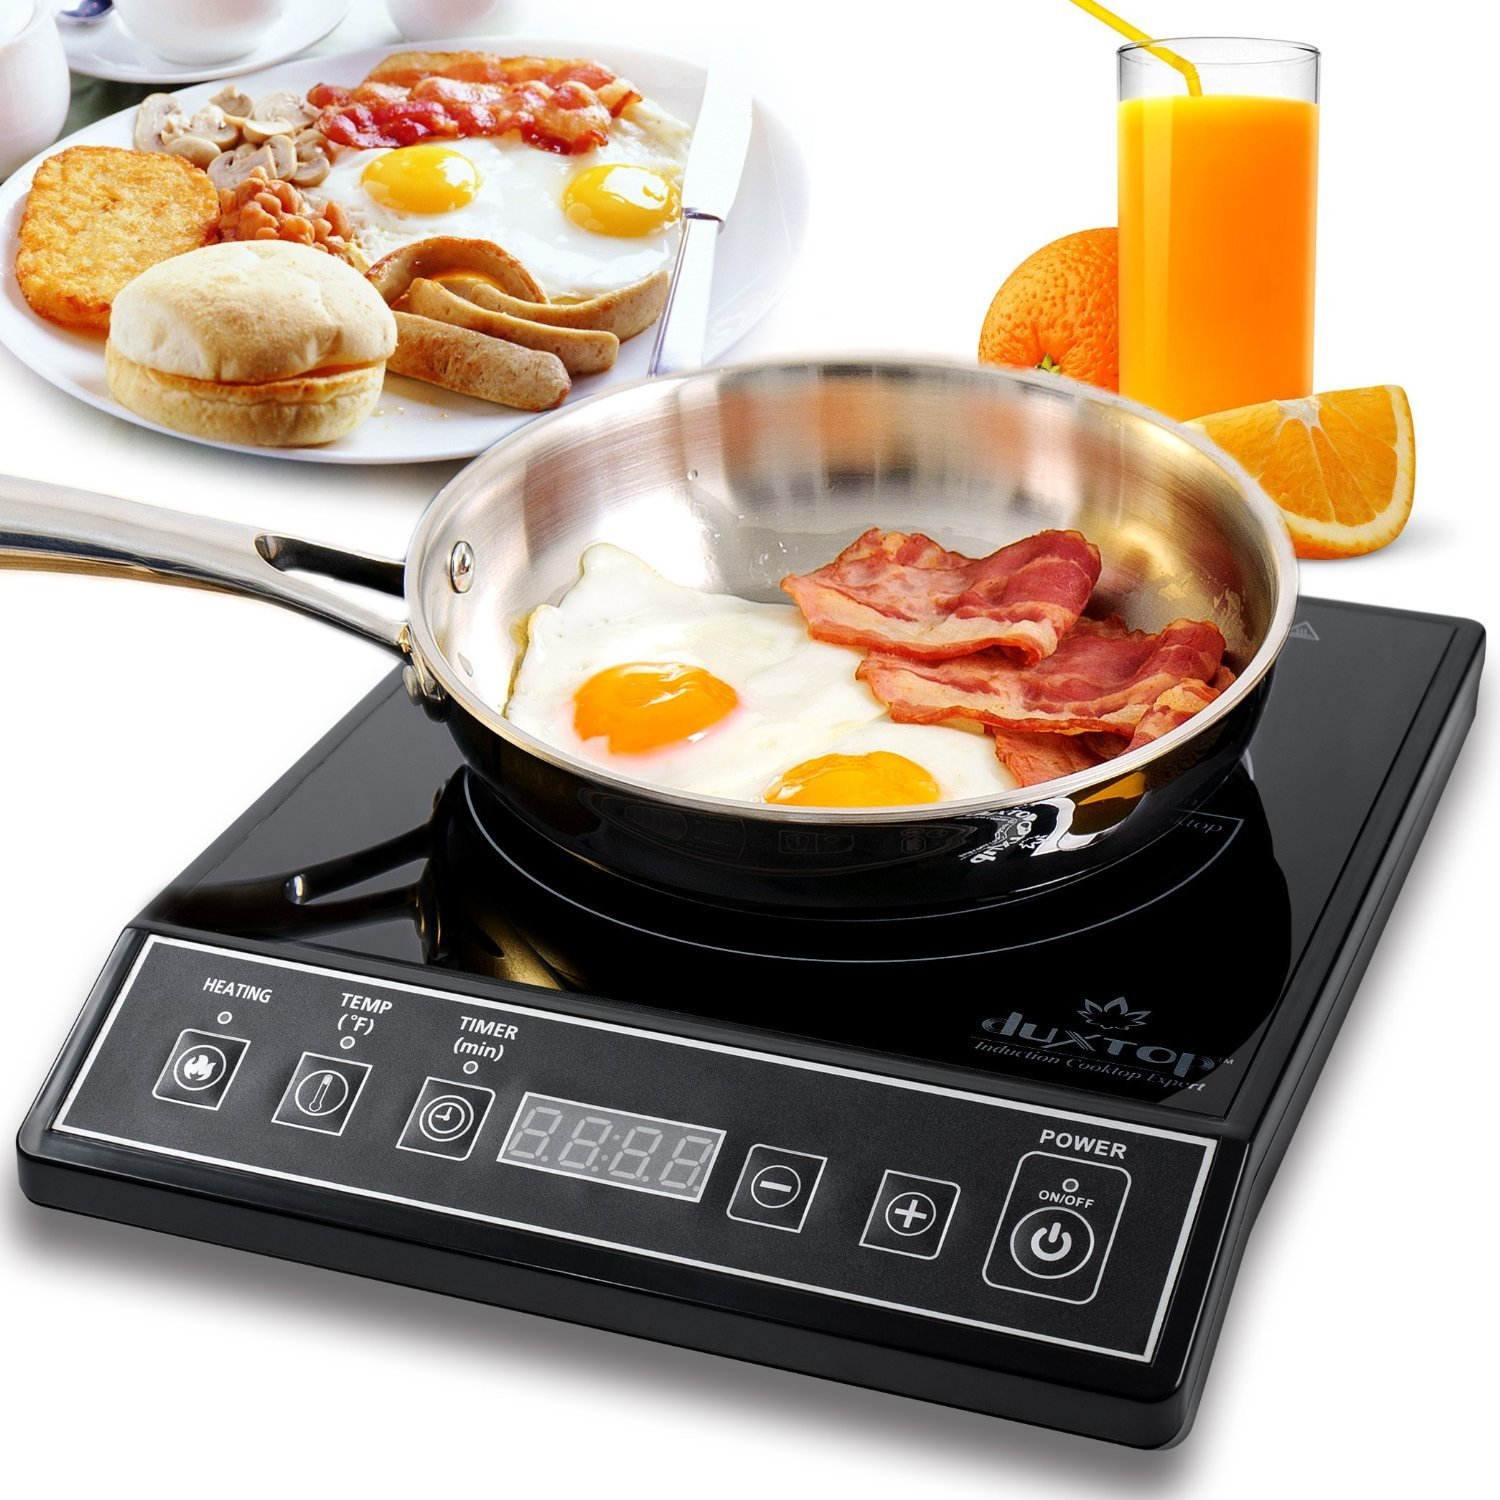 Secura 9100MC 1800W Portable Induction Cooktop Countertop Burner, Black - Best Induction Cooktop